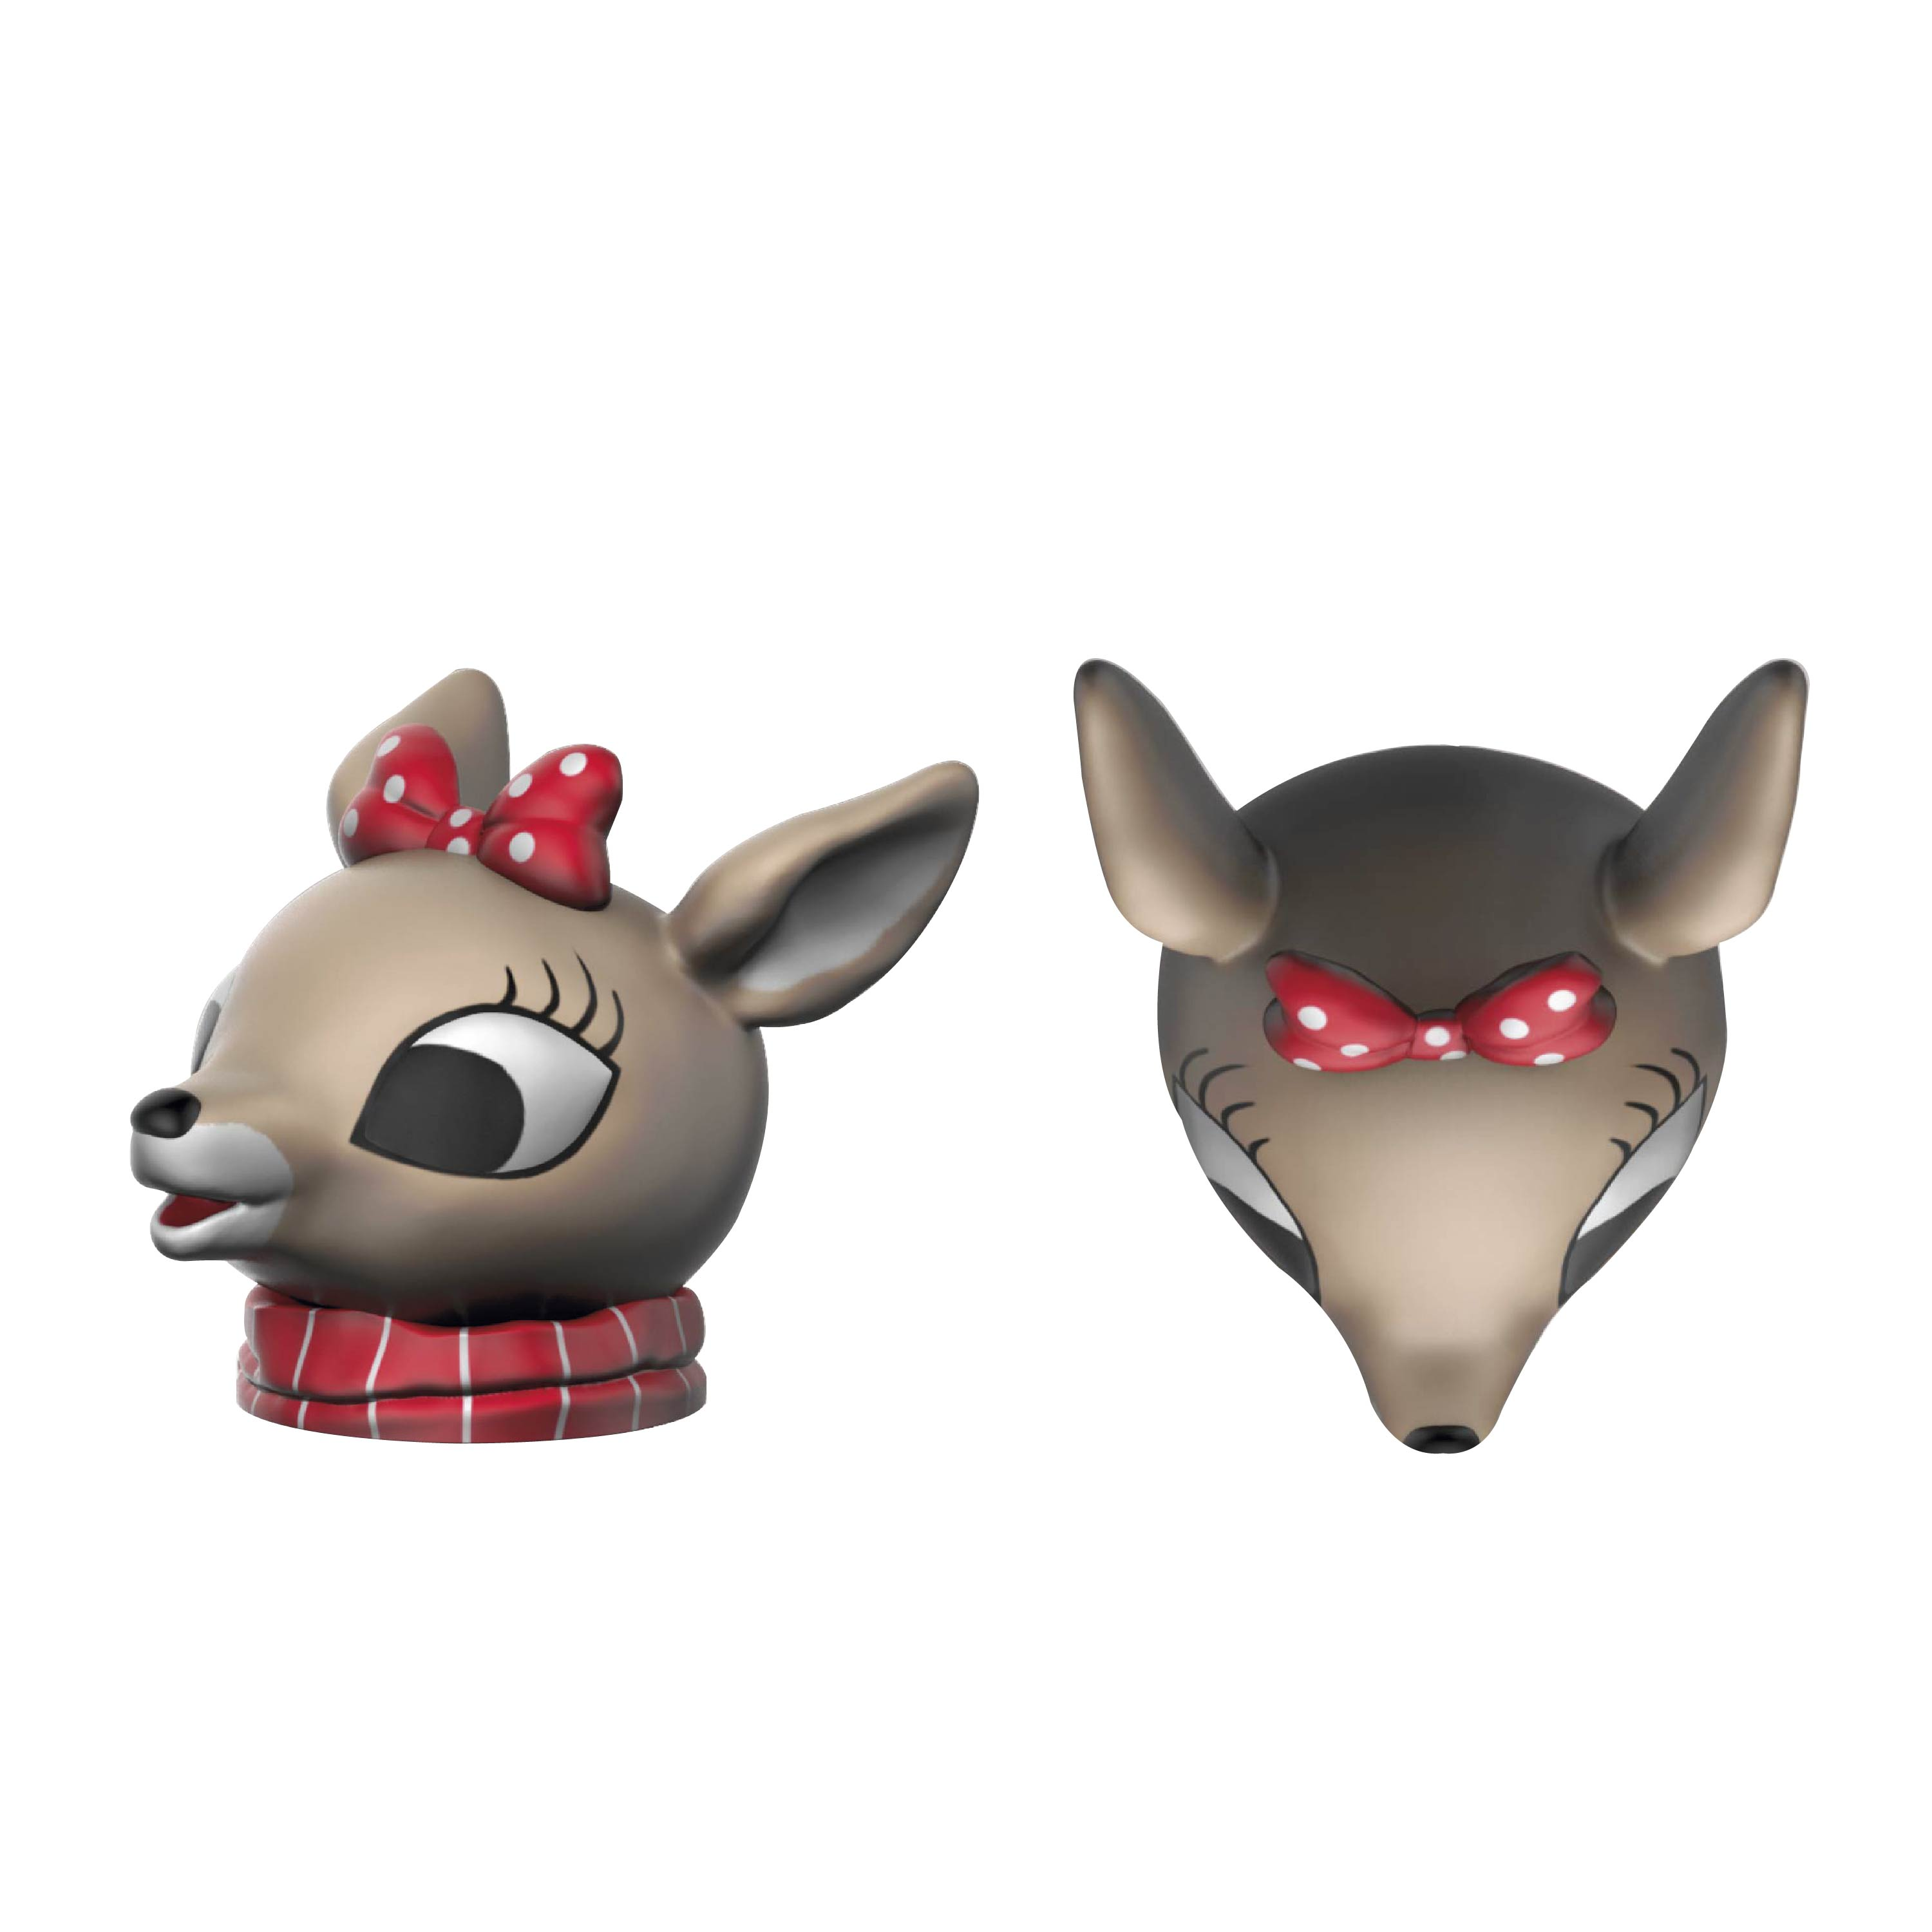 Rudolph the Red-Nosed Reindeer Salt and Pepper Shaker Set, Rudolph & Clarice, 2-piece set slideshow image 8